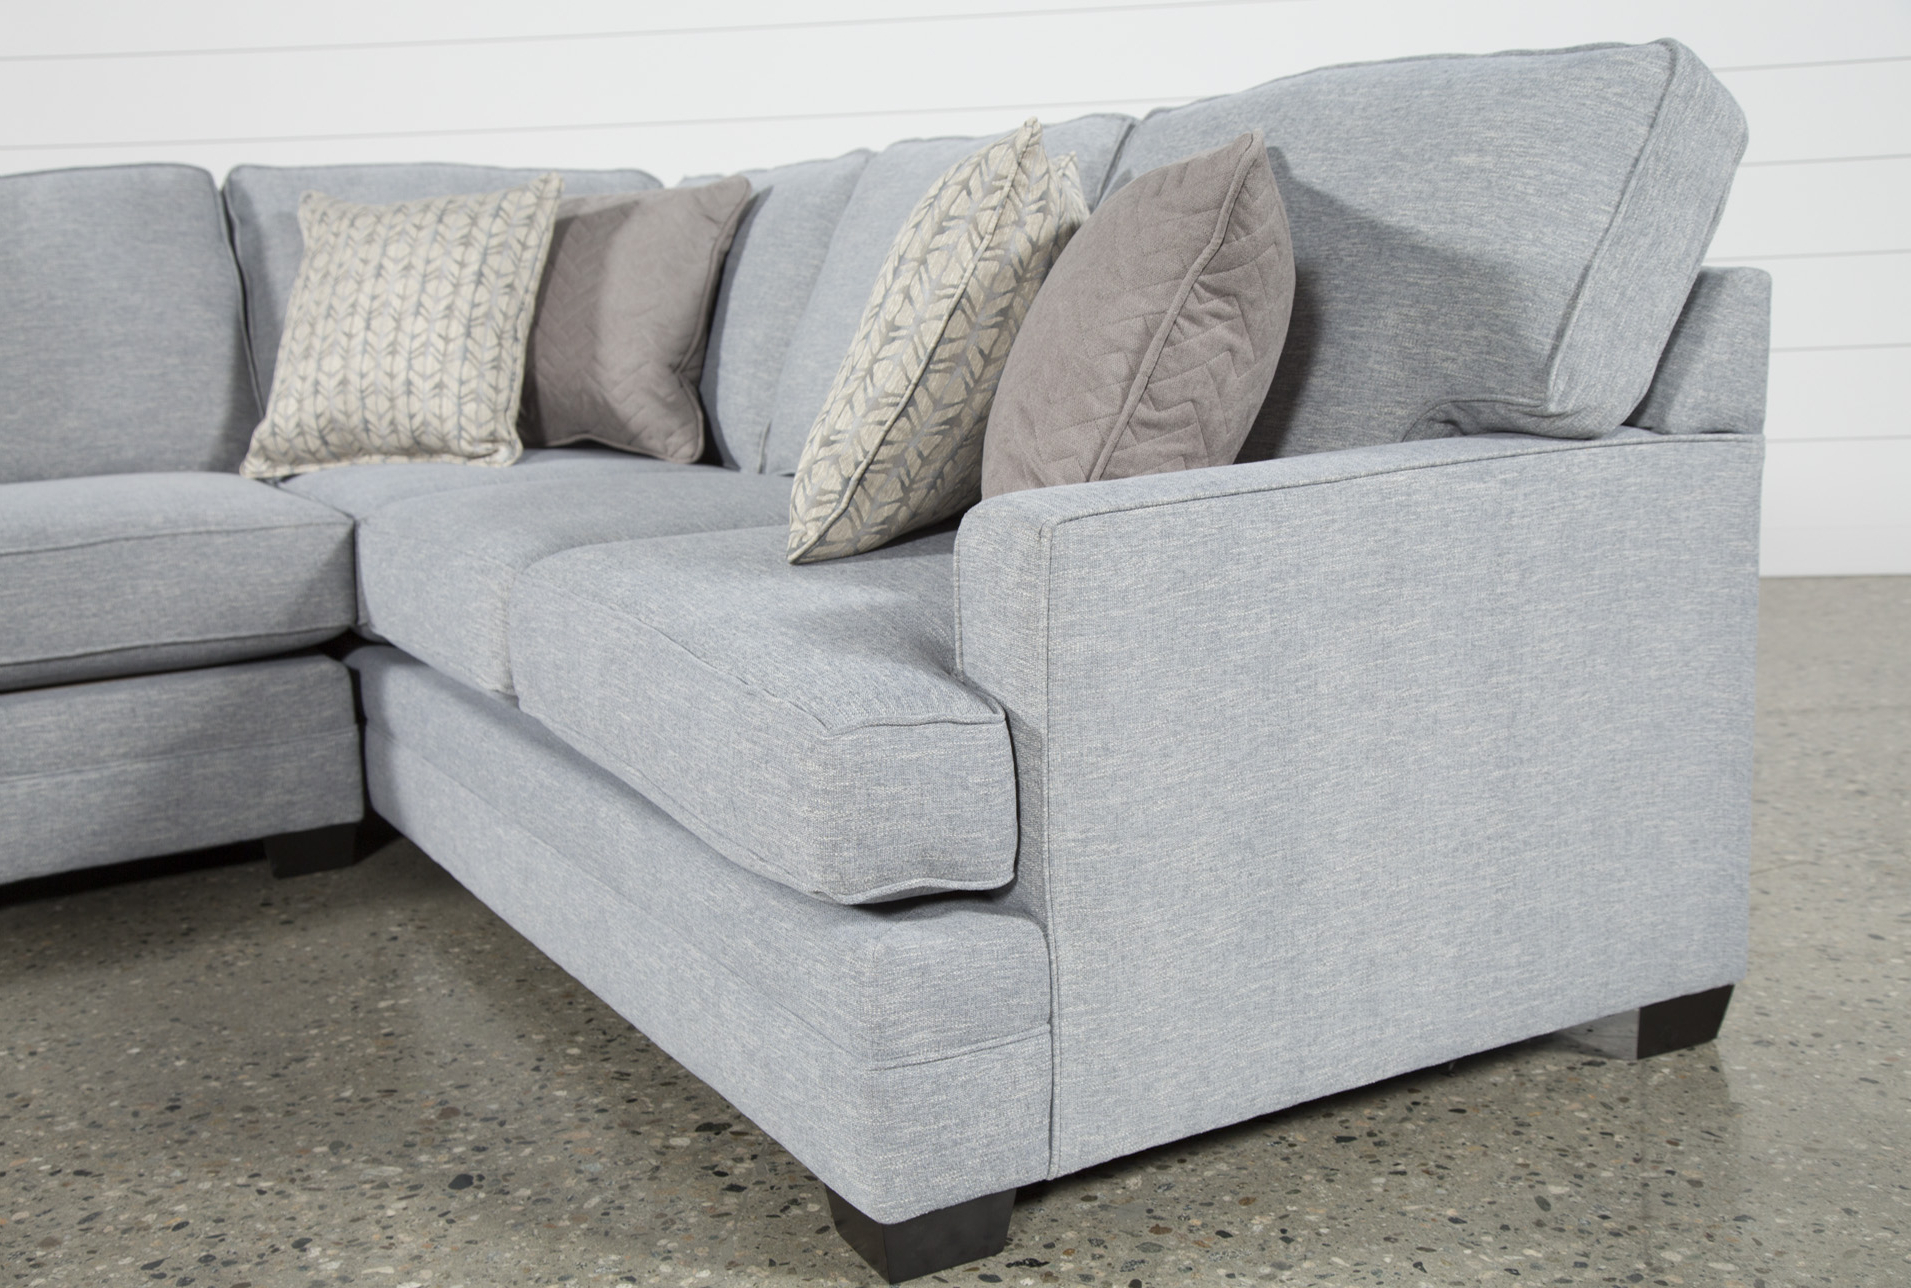 Josephine 2 Piece Sectionals With Laf Sofa Intended For Most Recent Josephine 2 Piece Sectional W/raf Sofa (Gallery 3 of 20)